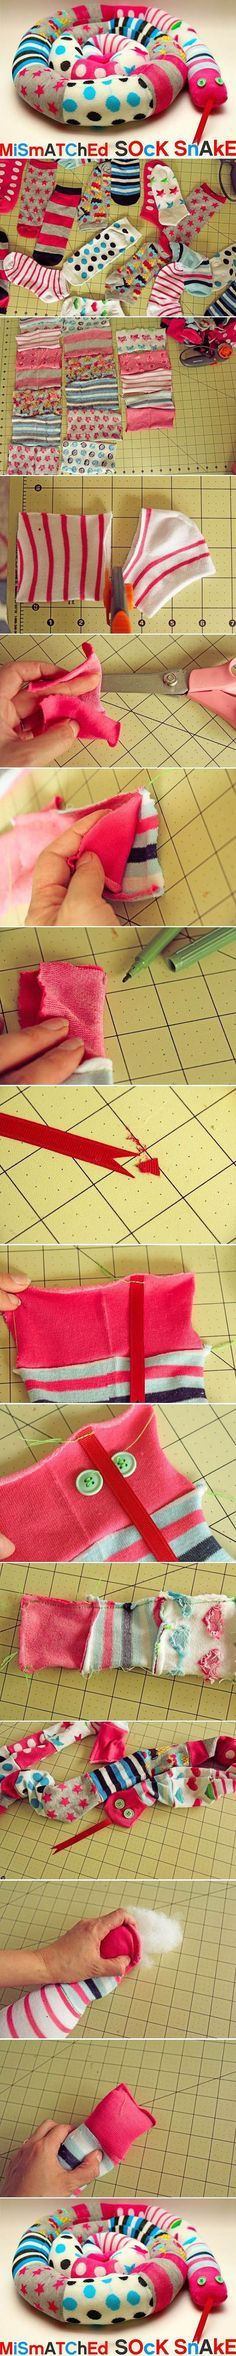 DIY Cute Thread Snake created from mismatched socks lost in the vortex of the washer/dryer: